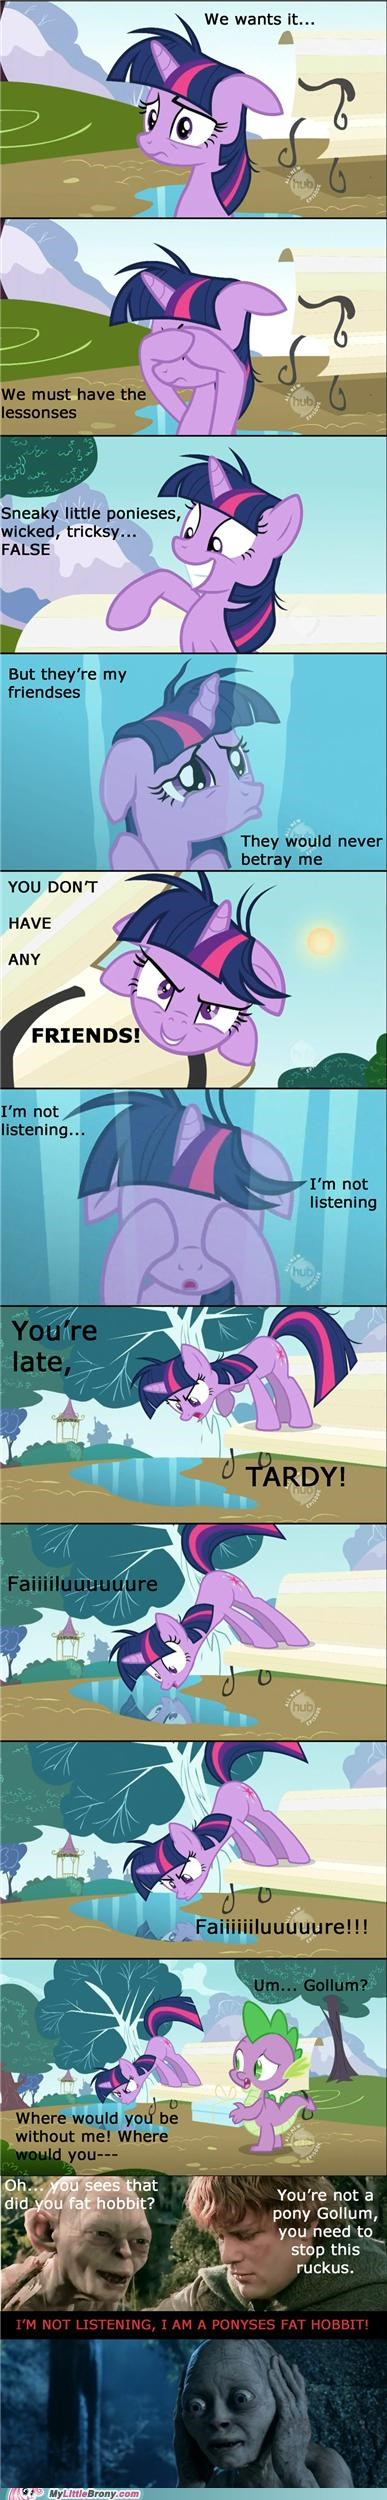 best of week comic comics gollum im not listening Lord of the Rings ponies twilight sparkle